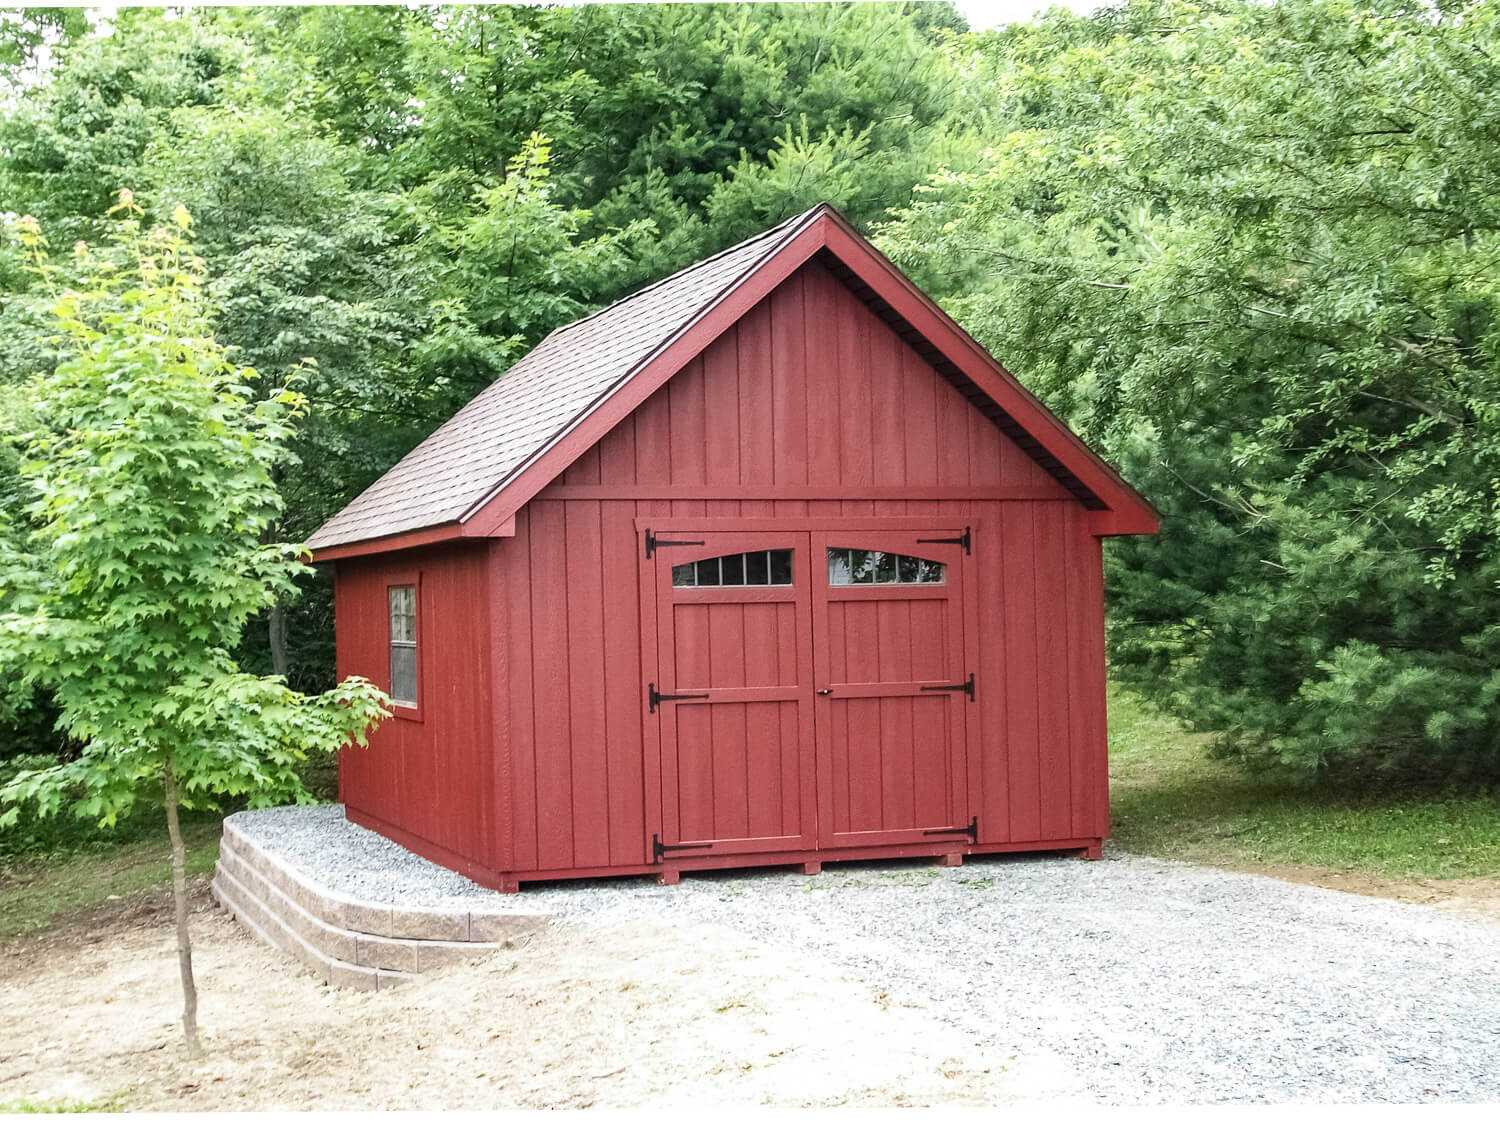 personalized wood storage shed with painted red vertical siding gable shingle roof and transom windows in the doors